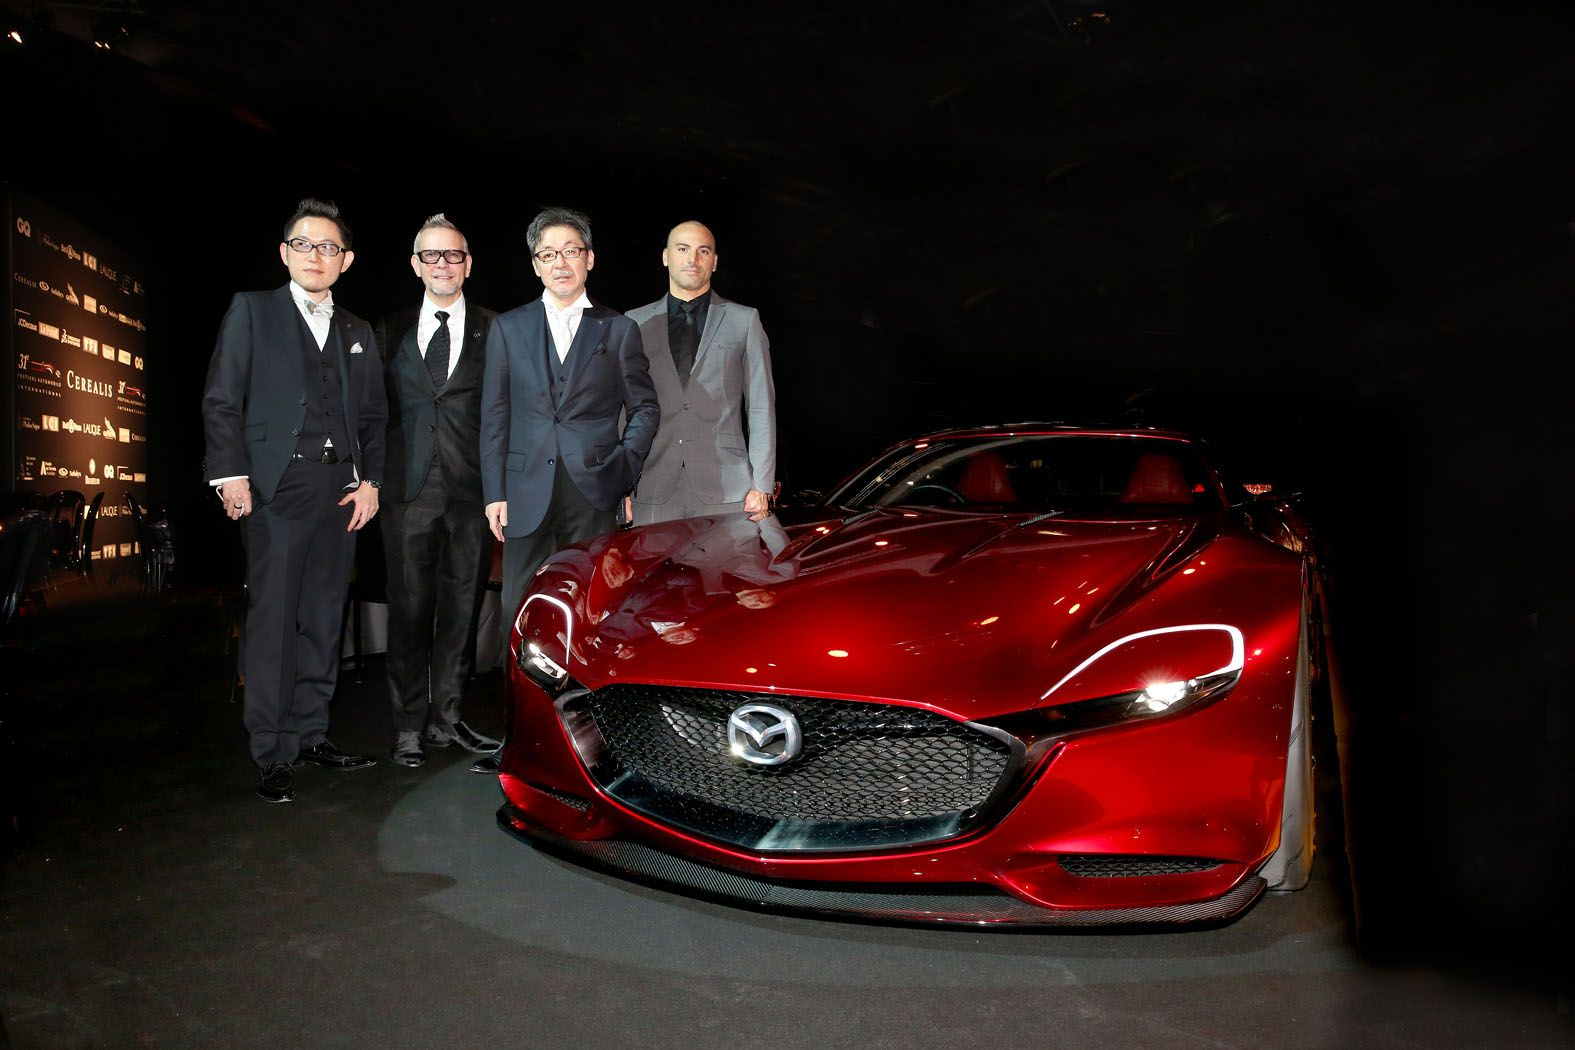 2015 Mazda RX VISION Concept. World Premiere Of This New Sports Car Concept  Model